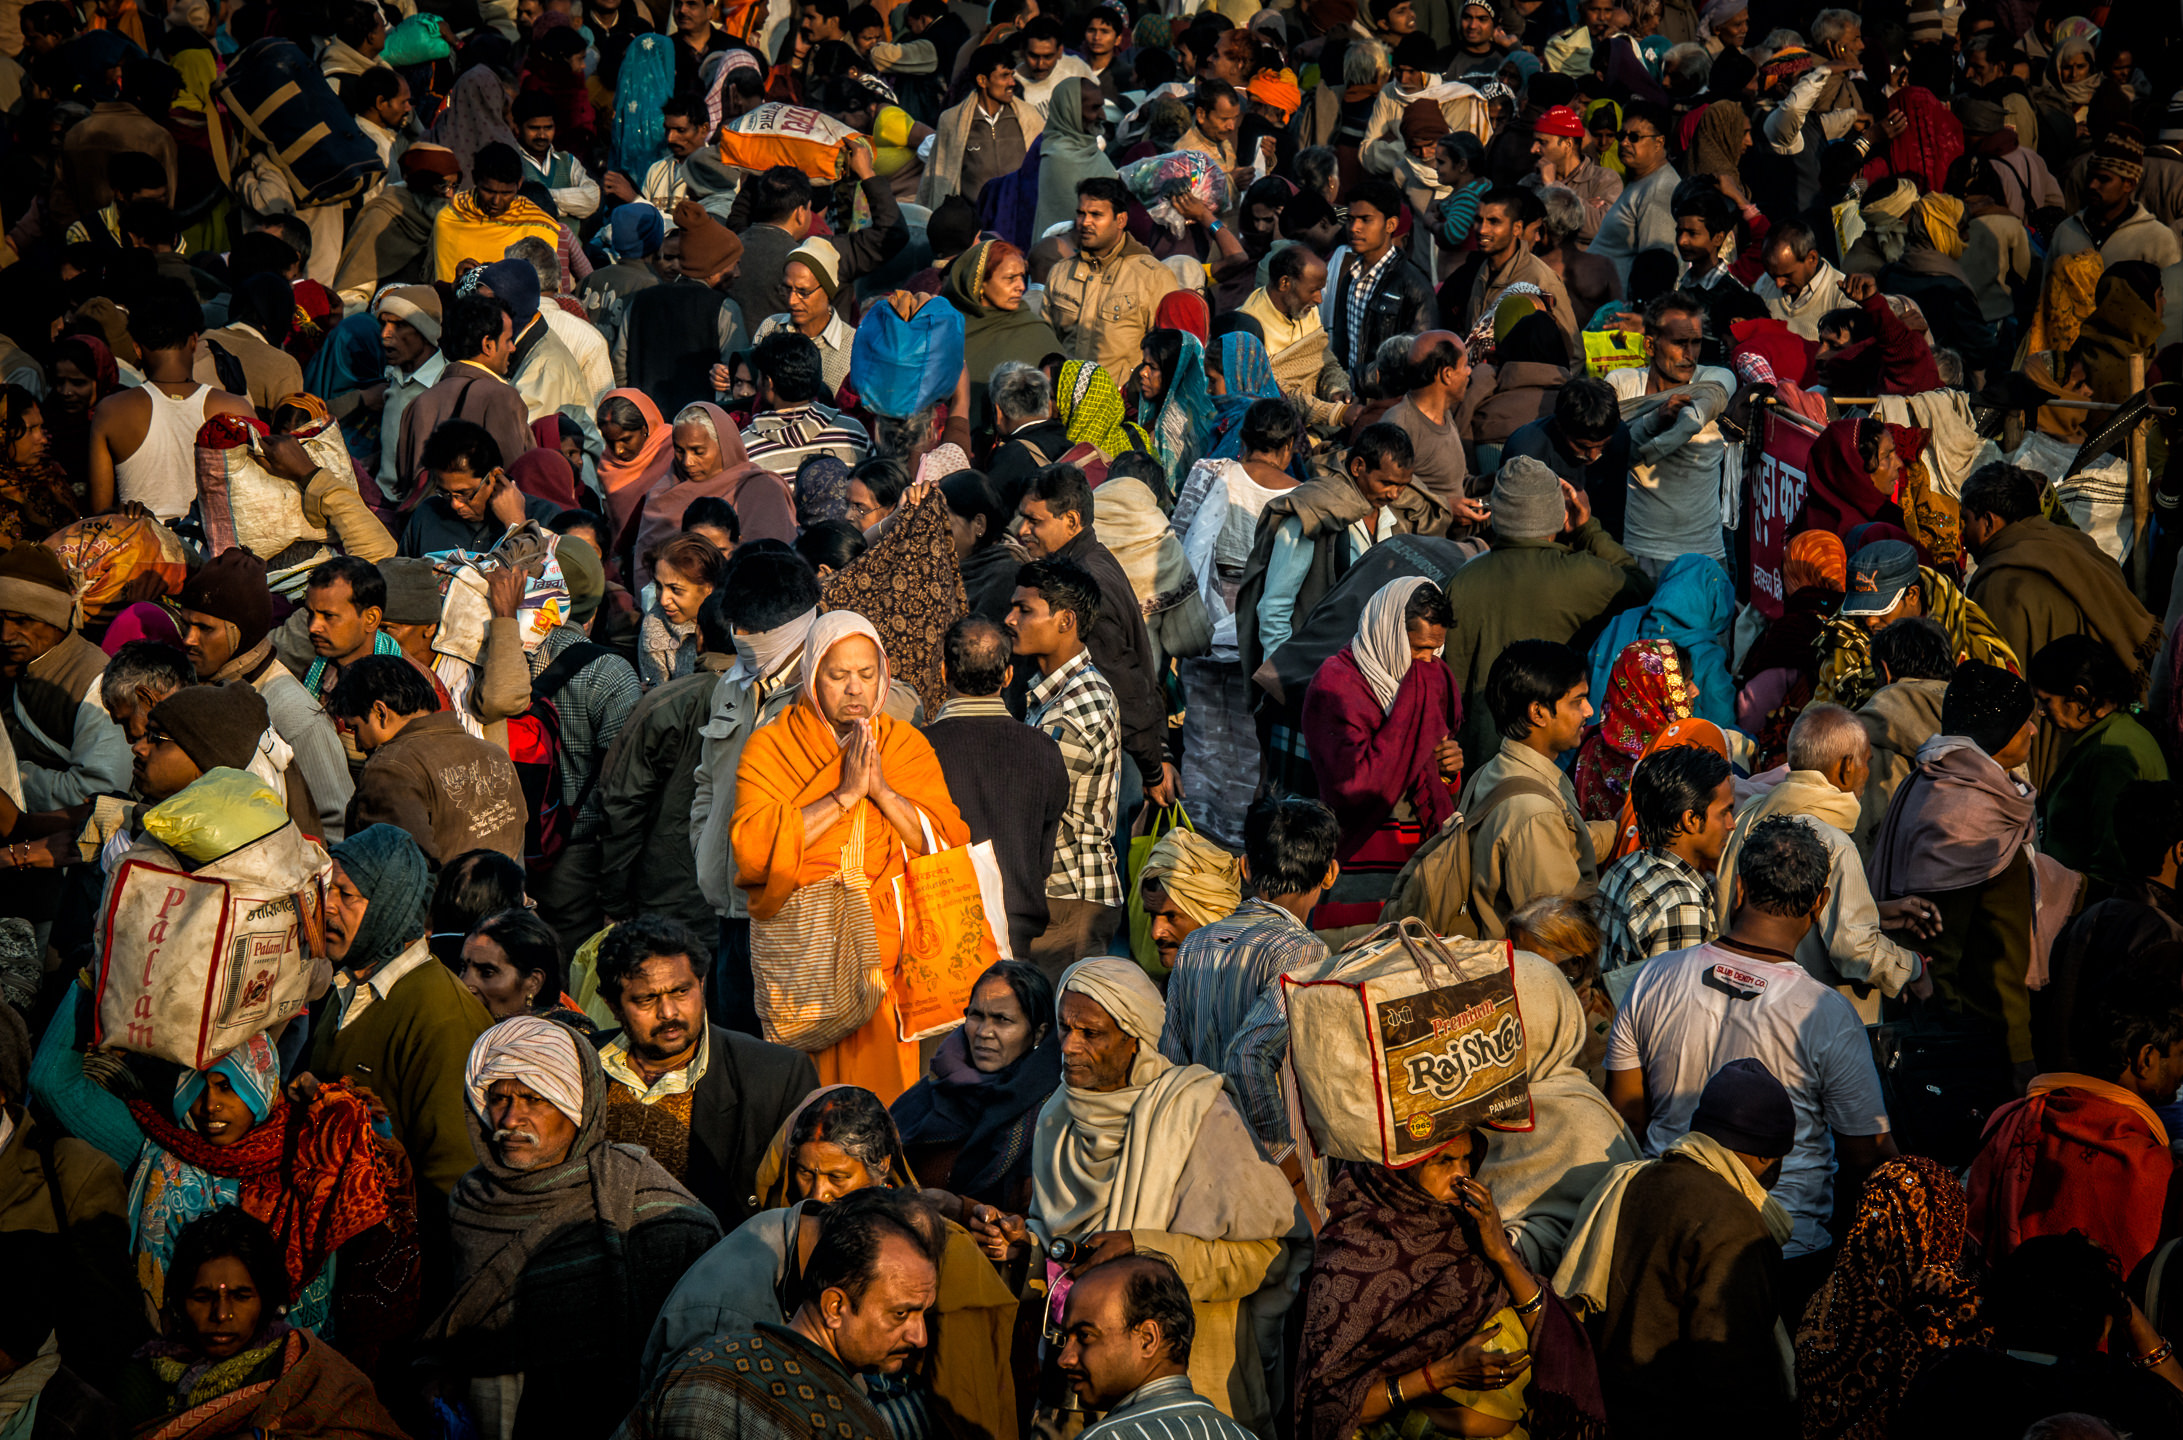 [2013-02-10] India Day14 Kumbh 6 [30m] (0526) NIKON D800-Edit.jpg